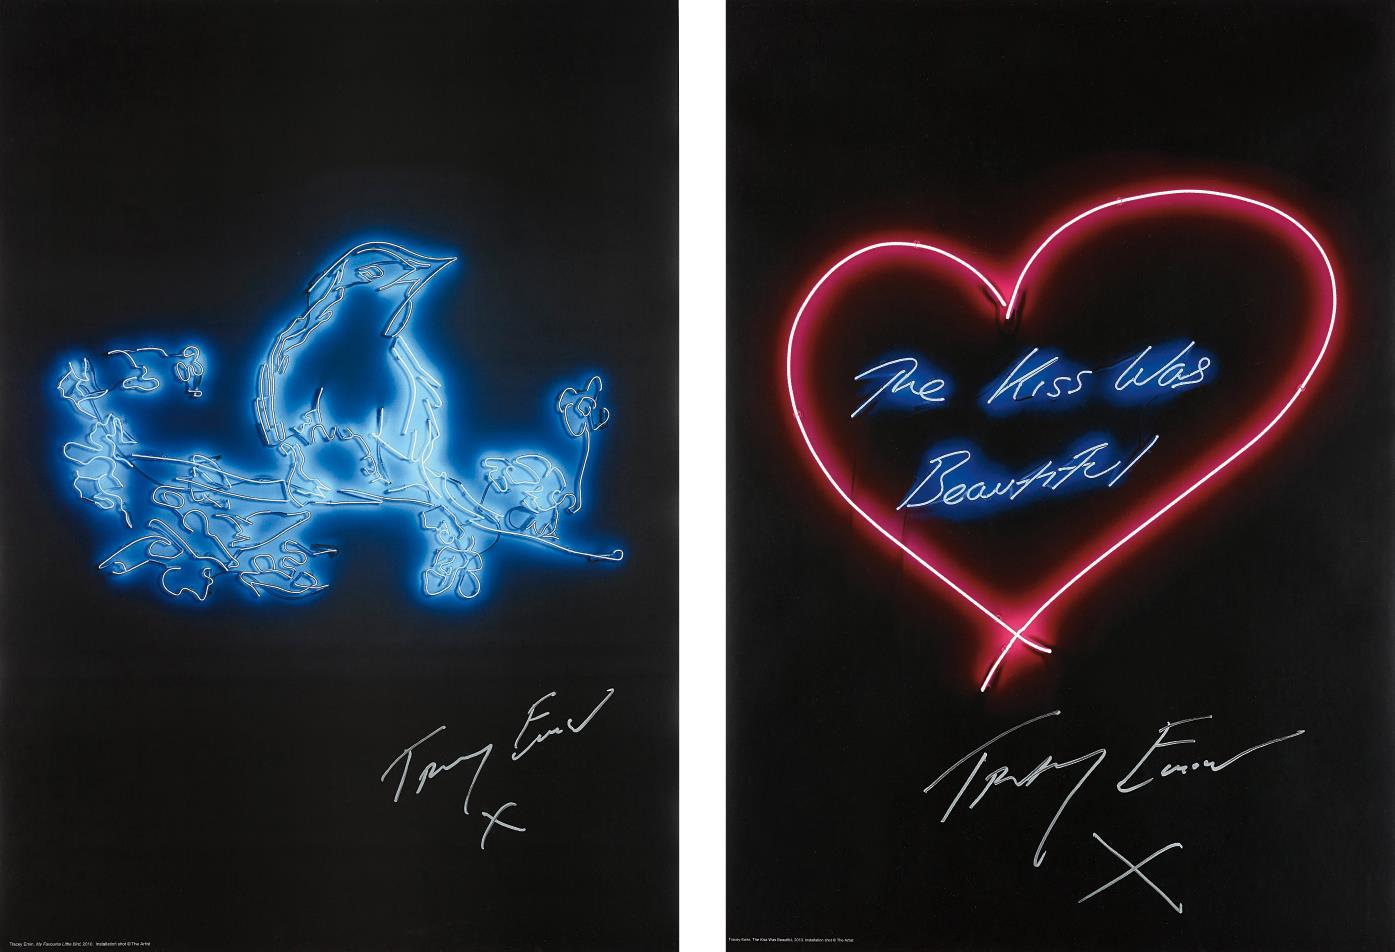 Tracey Emin-My Favourite Little Bird; and The Kiss was Beautiful-2016